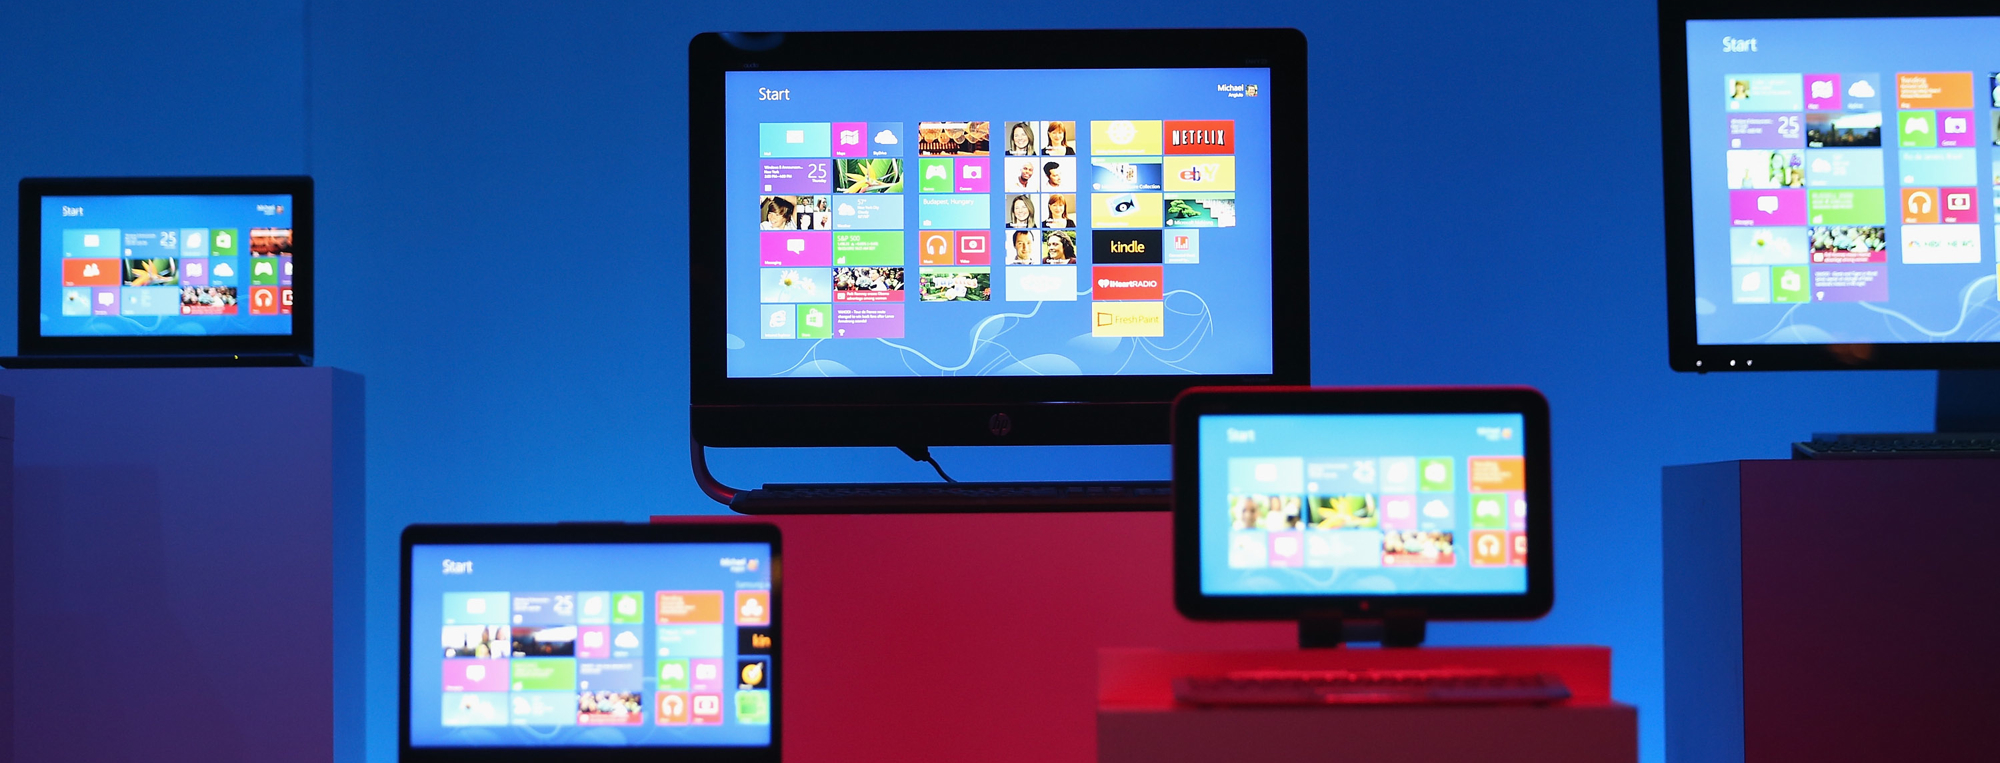 Microsoft Extends Windows 8.1 Update Requirement for Security Updates